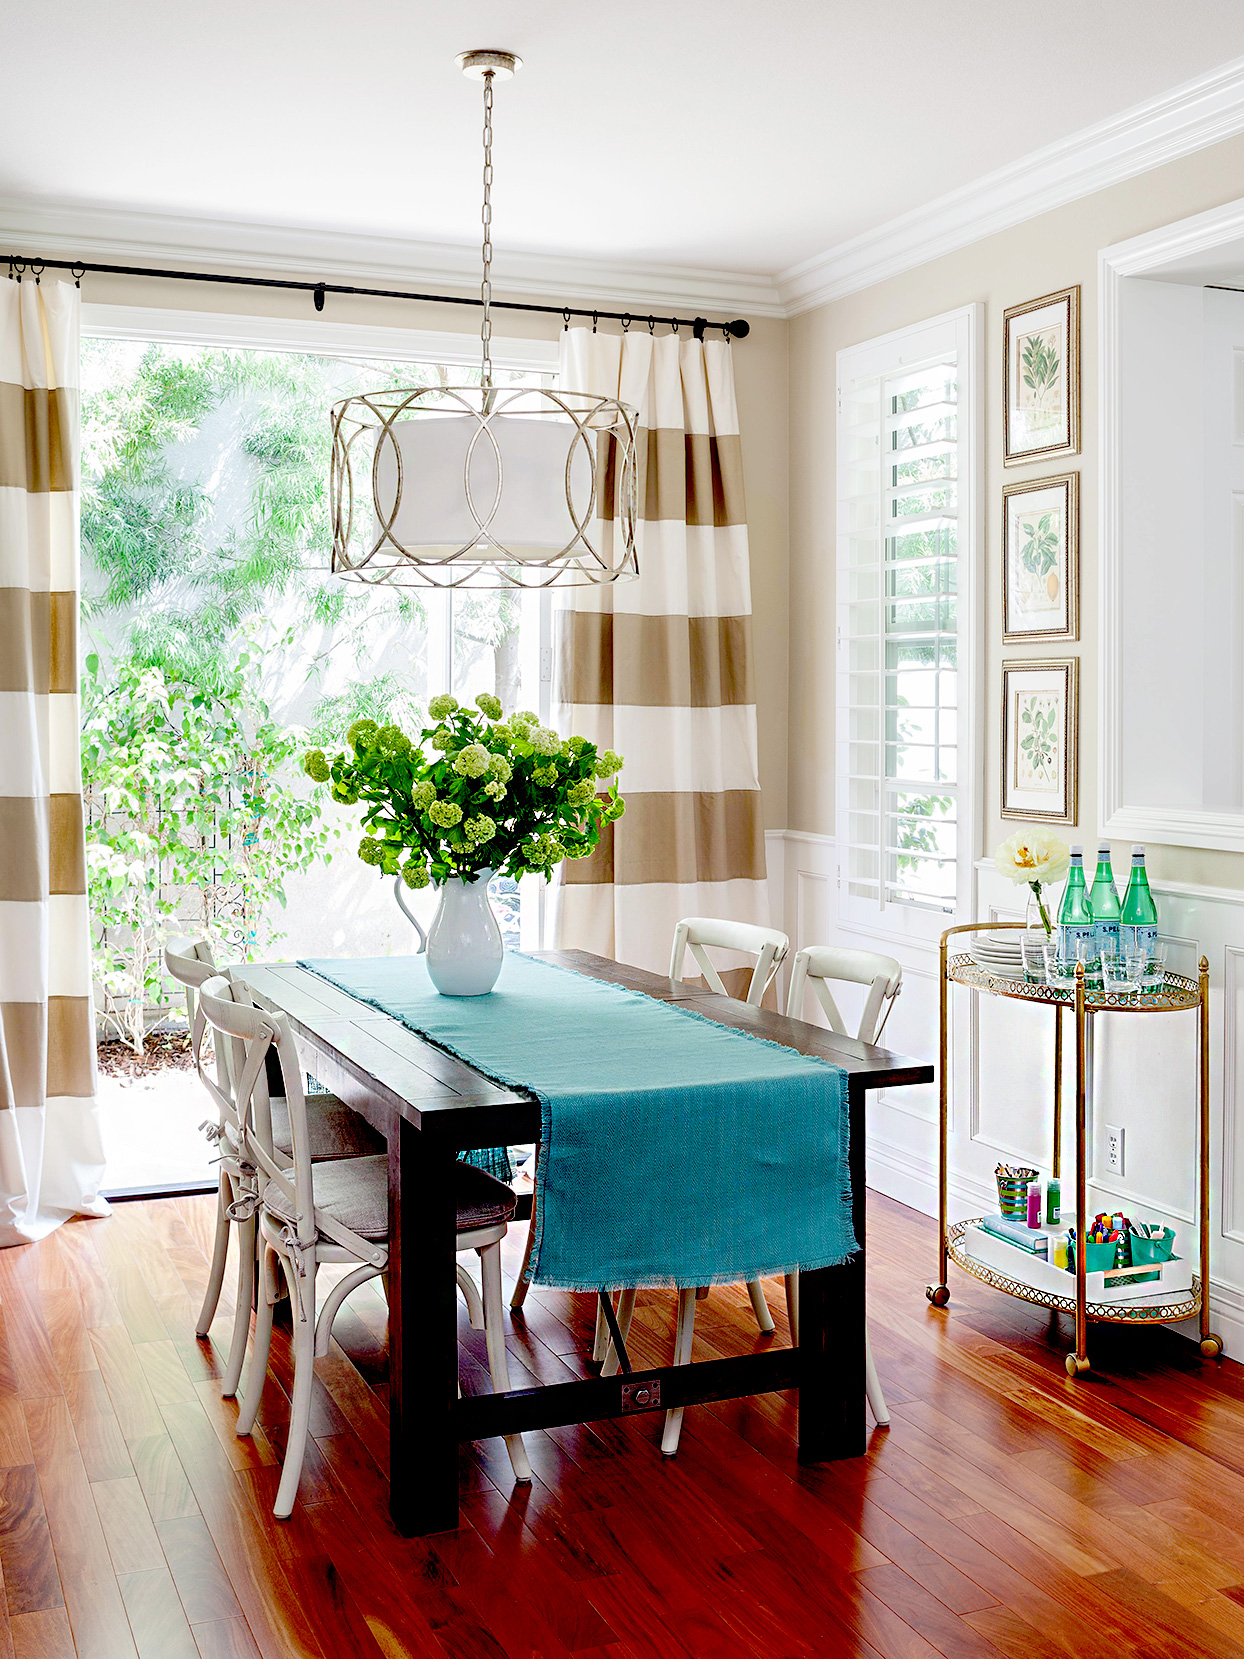 Dining room with dark wood table with blue runner